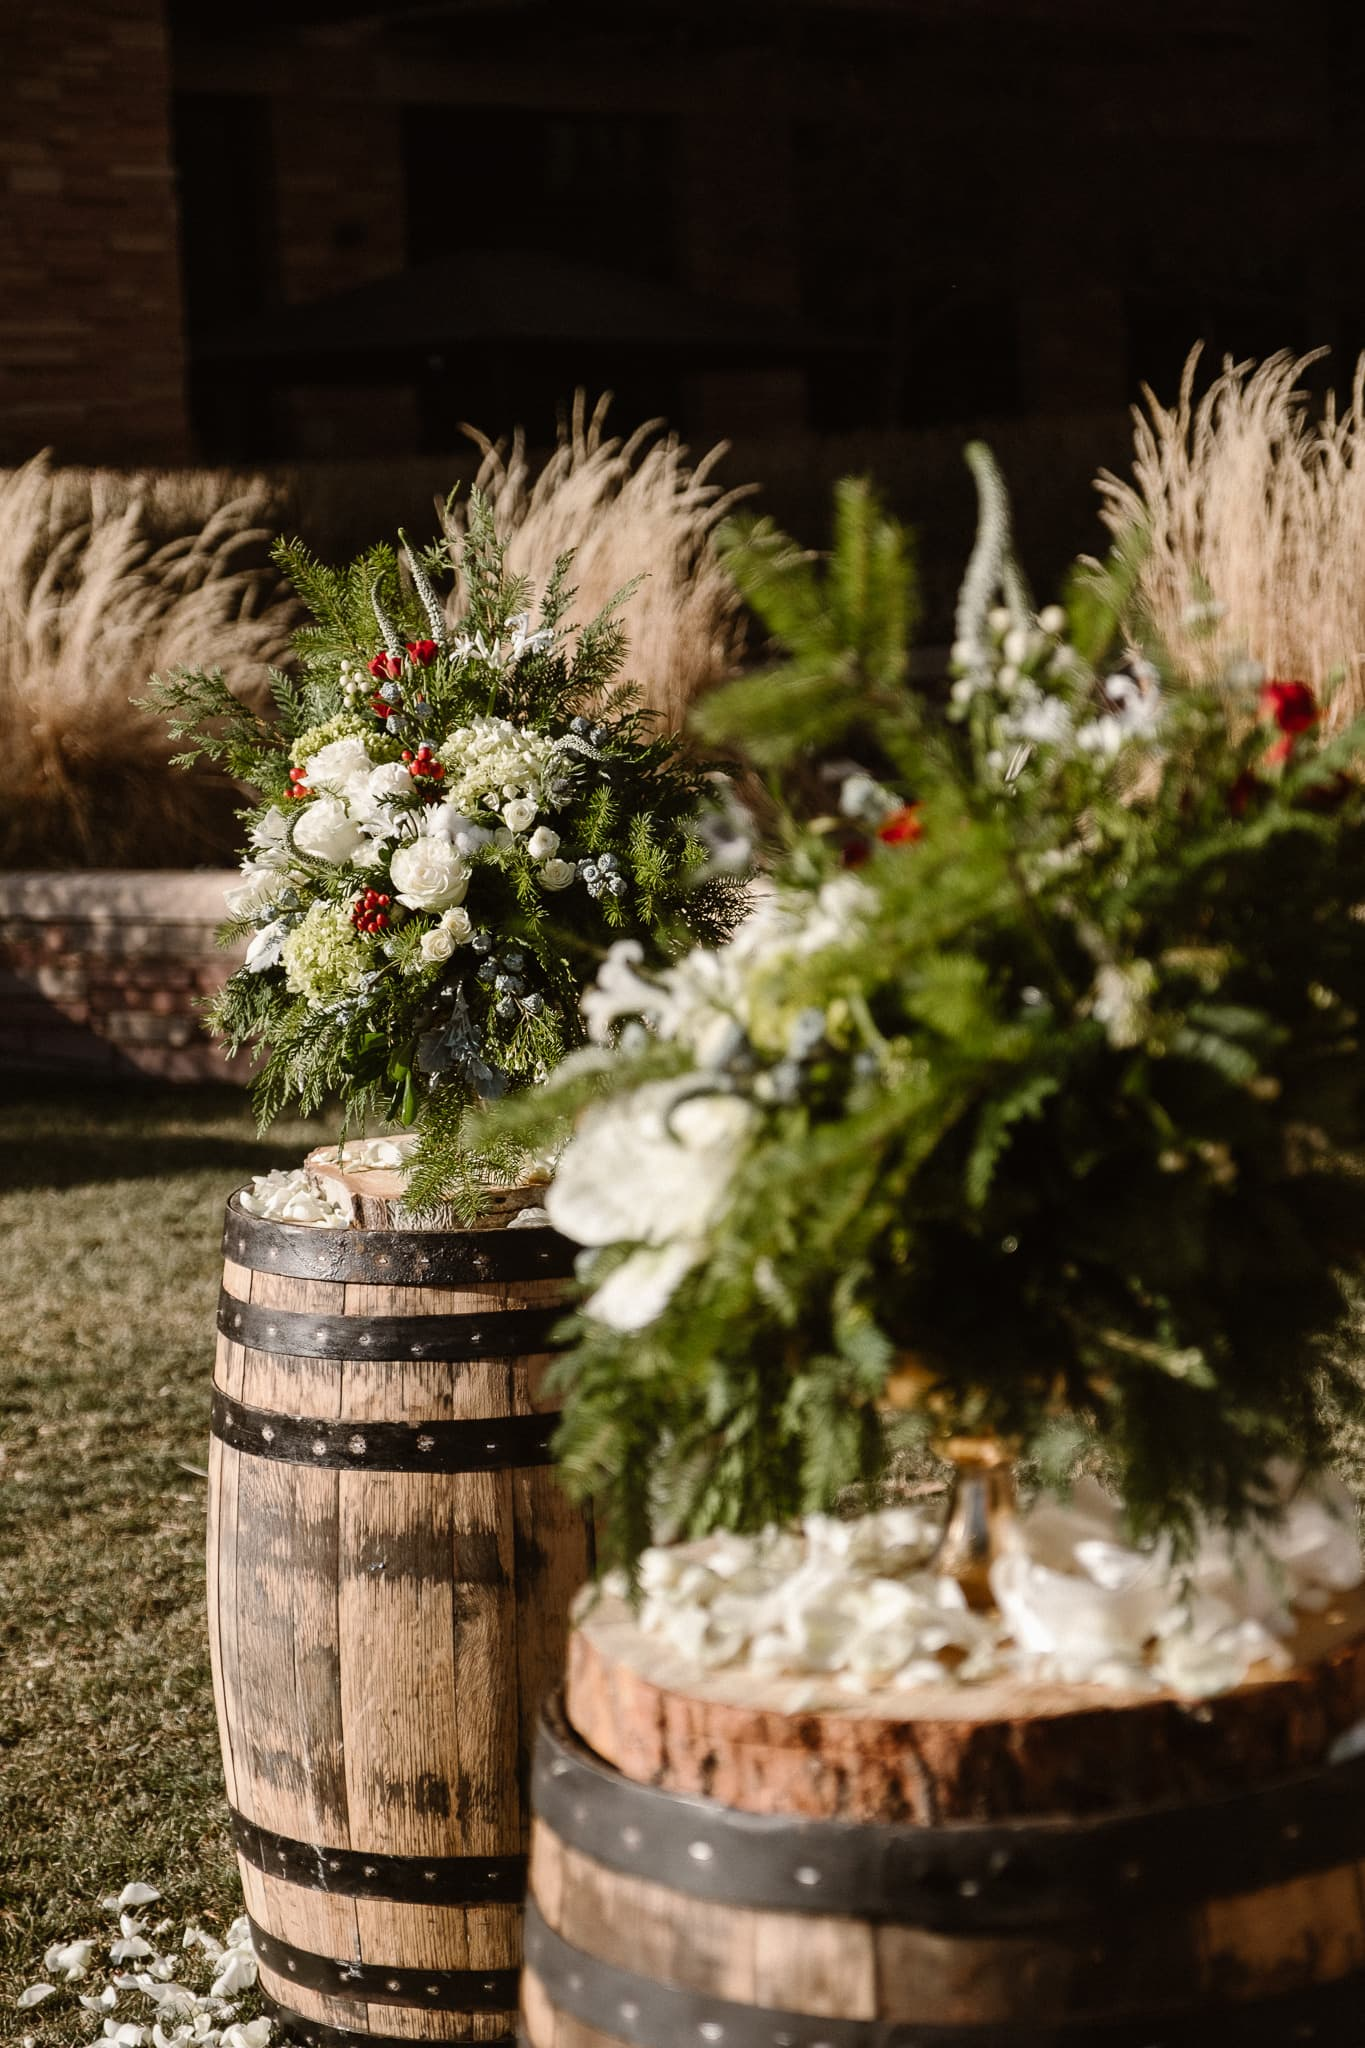 Christmas themed wedding florals by Boulder Blooms, St Julien wedding photographer, The St Julien Hotel & Spa wedding ceremony in downtown Boulder, Boulder wedding photographer